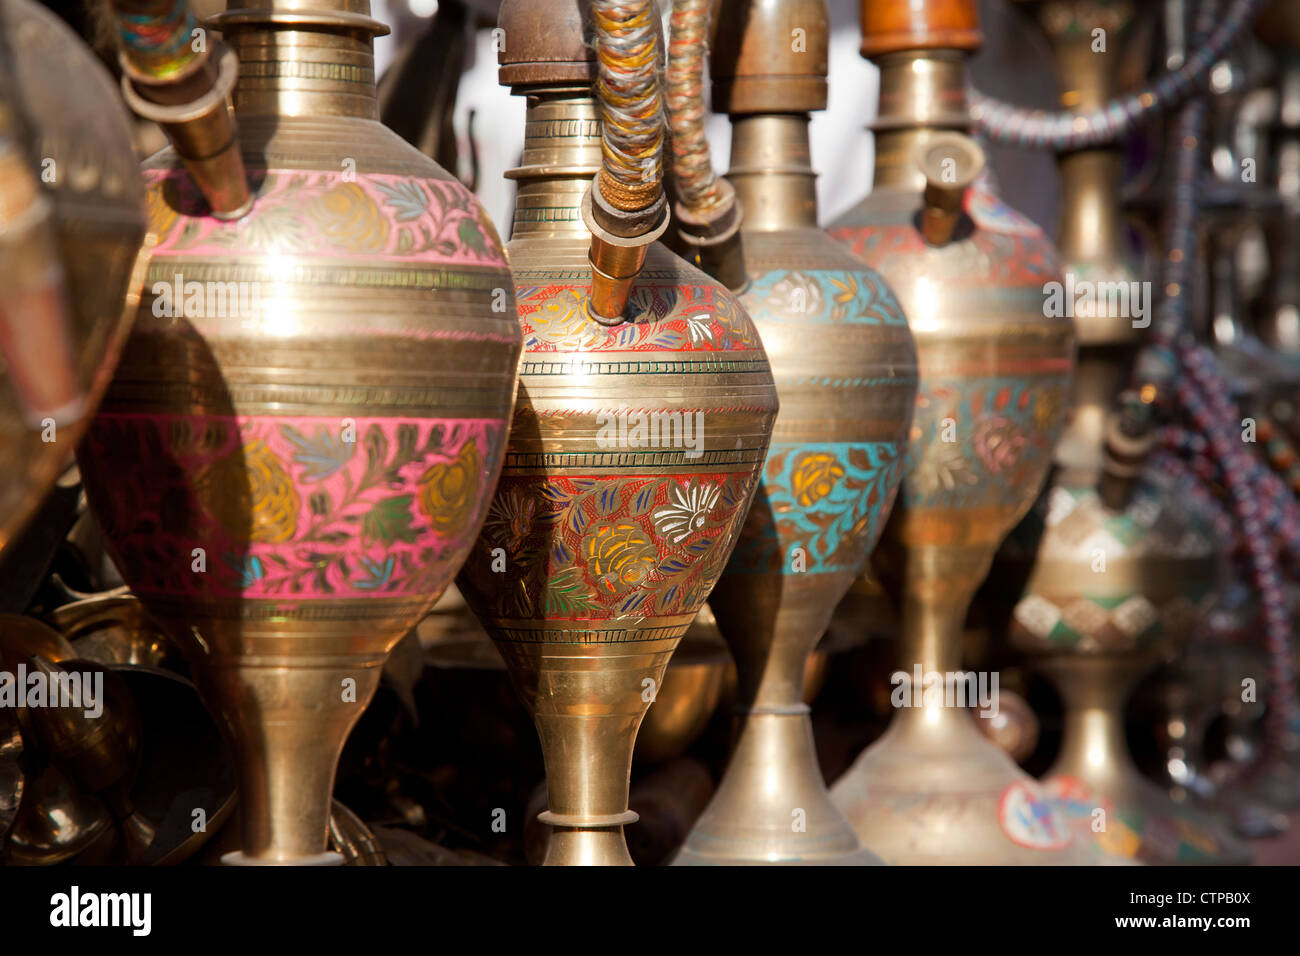 Close-up of Indian water pipes / hookah at market stall in Jodhpur, Rajasthan, India - Stock Image